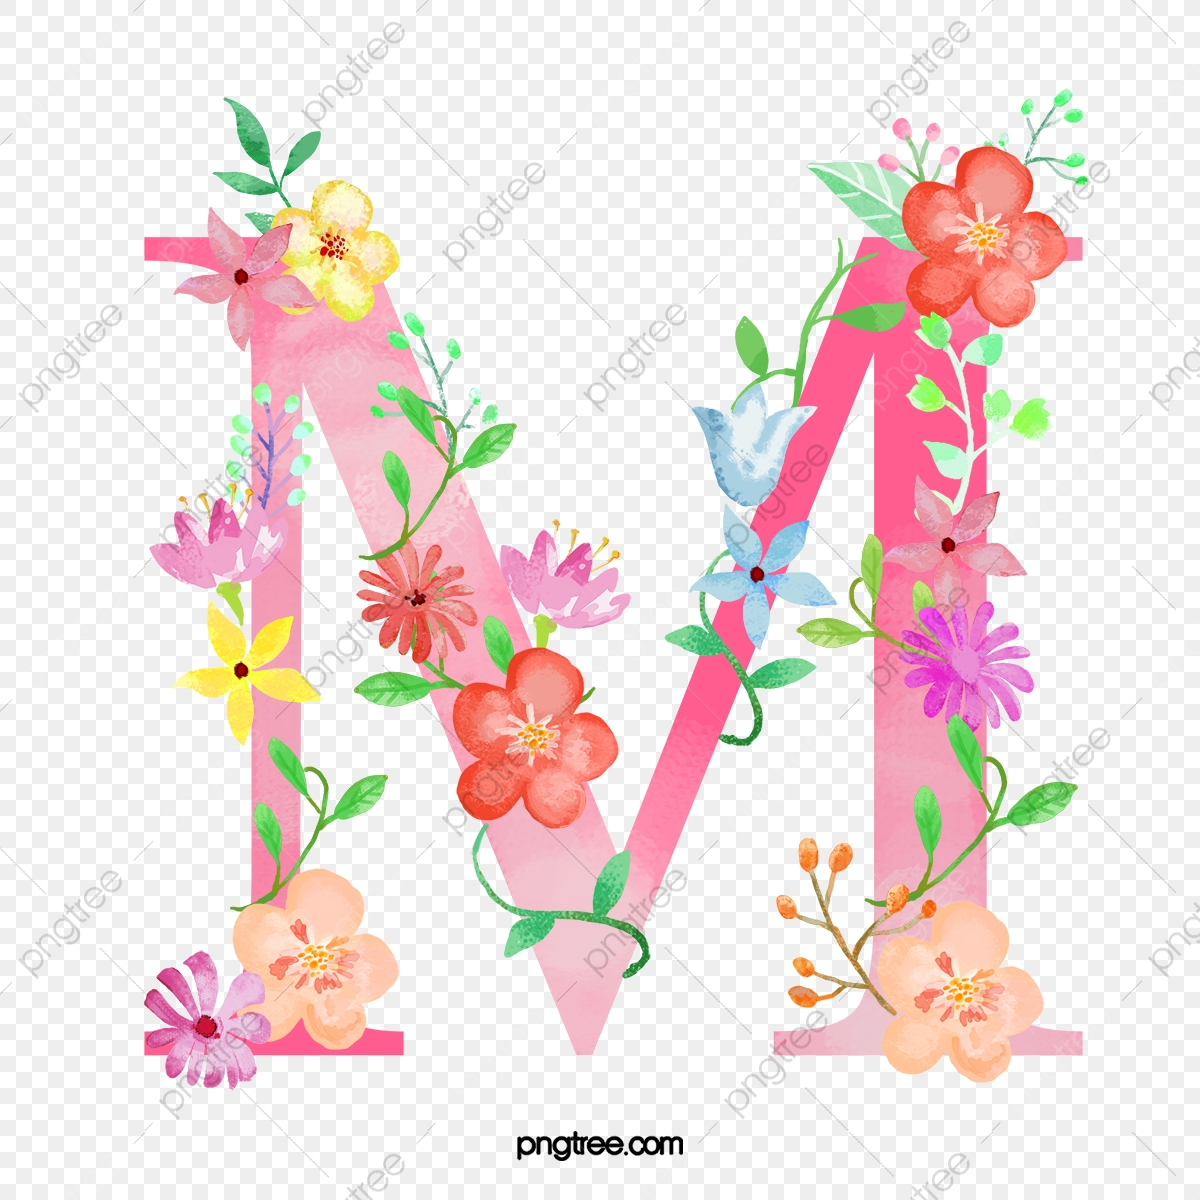 Flowers Letter M Letter M Flower Png Transparent Clipart Image And Psd File For Free Download